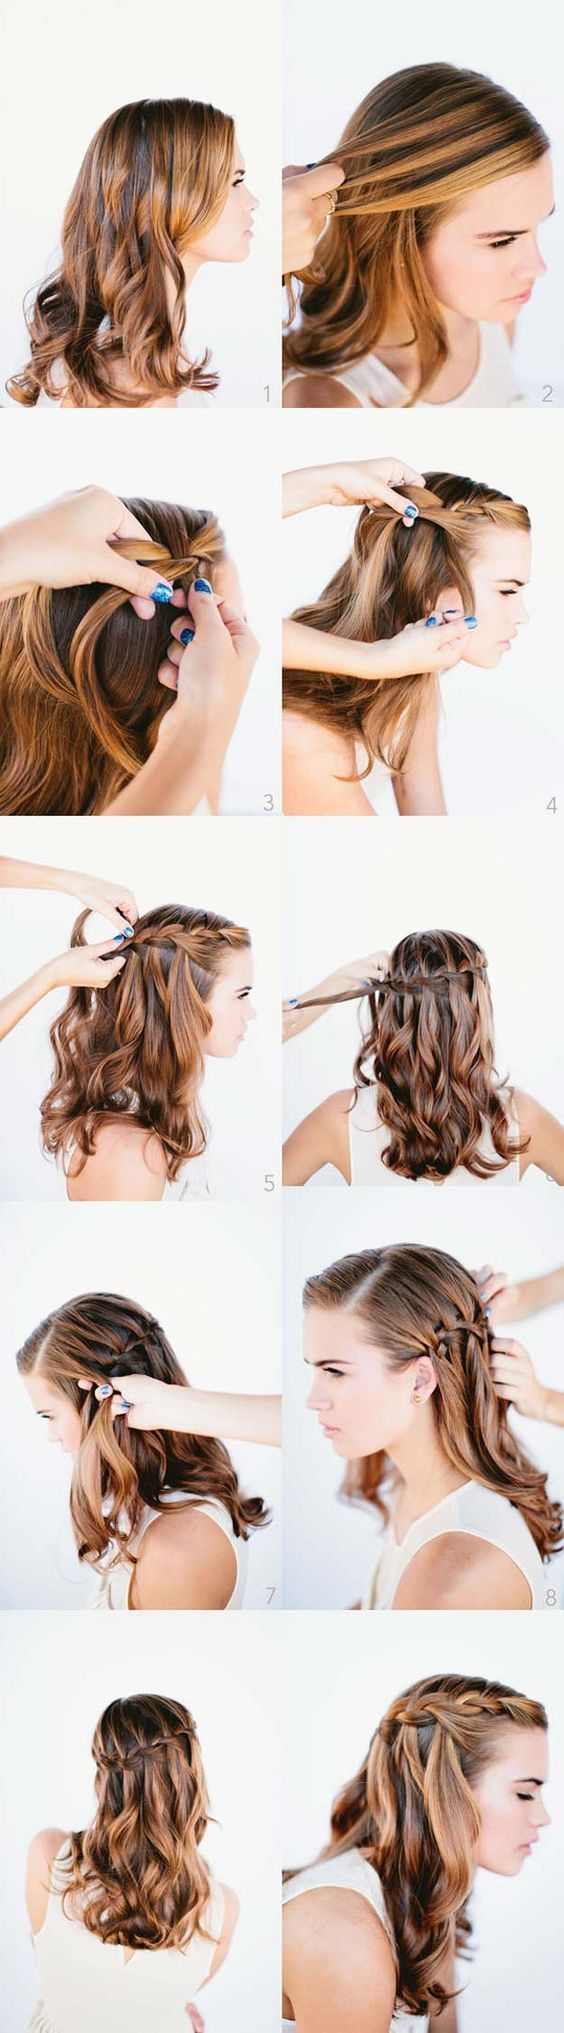 Best Hair Braiding Tutorials - Waterfall Braid Wedding Hairstyles ...